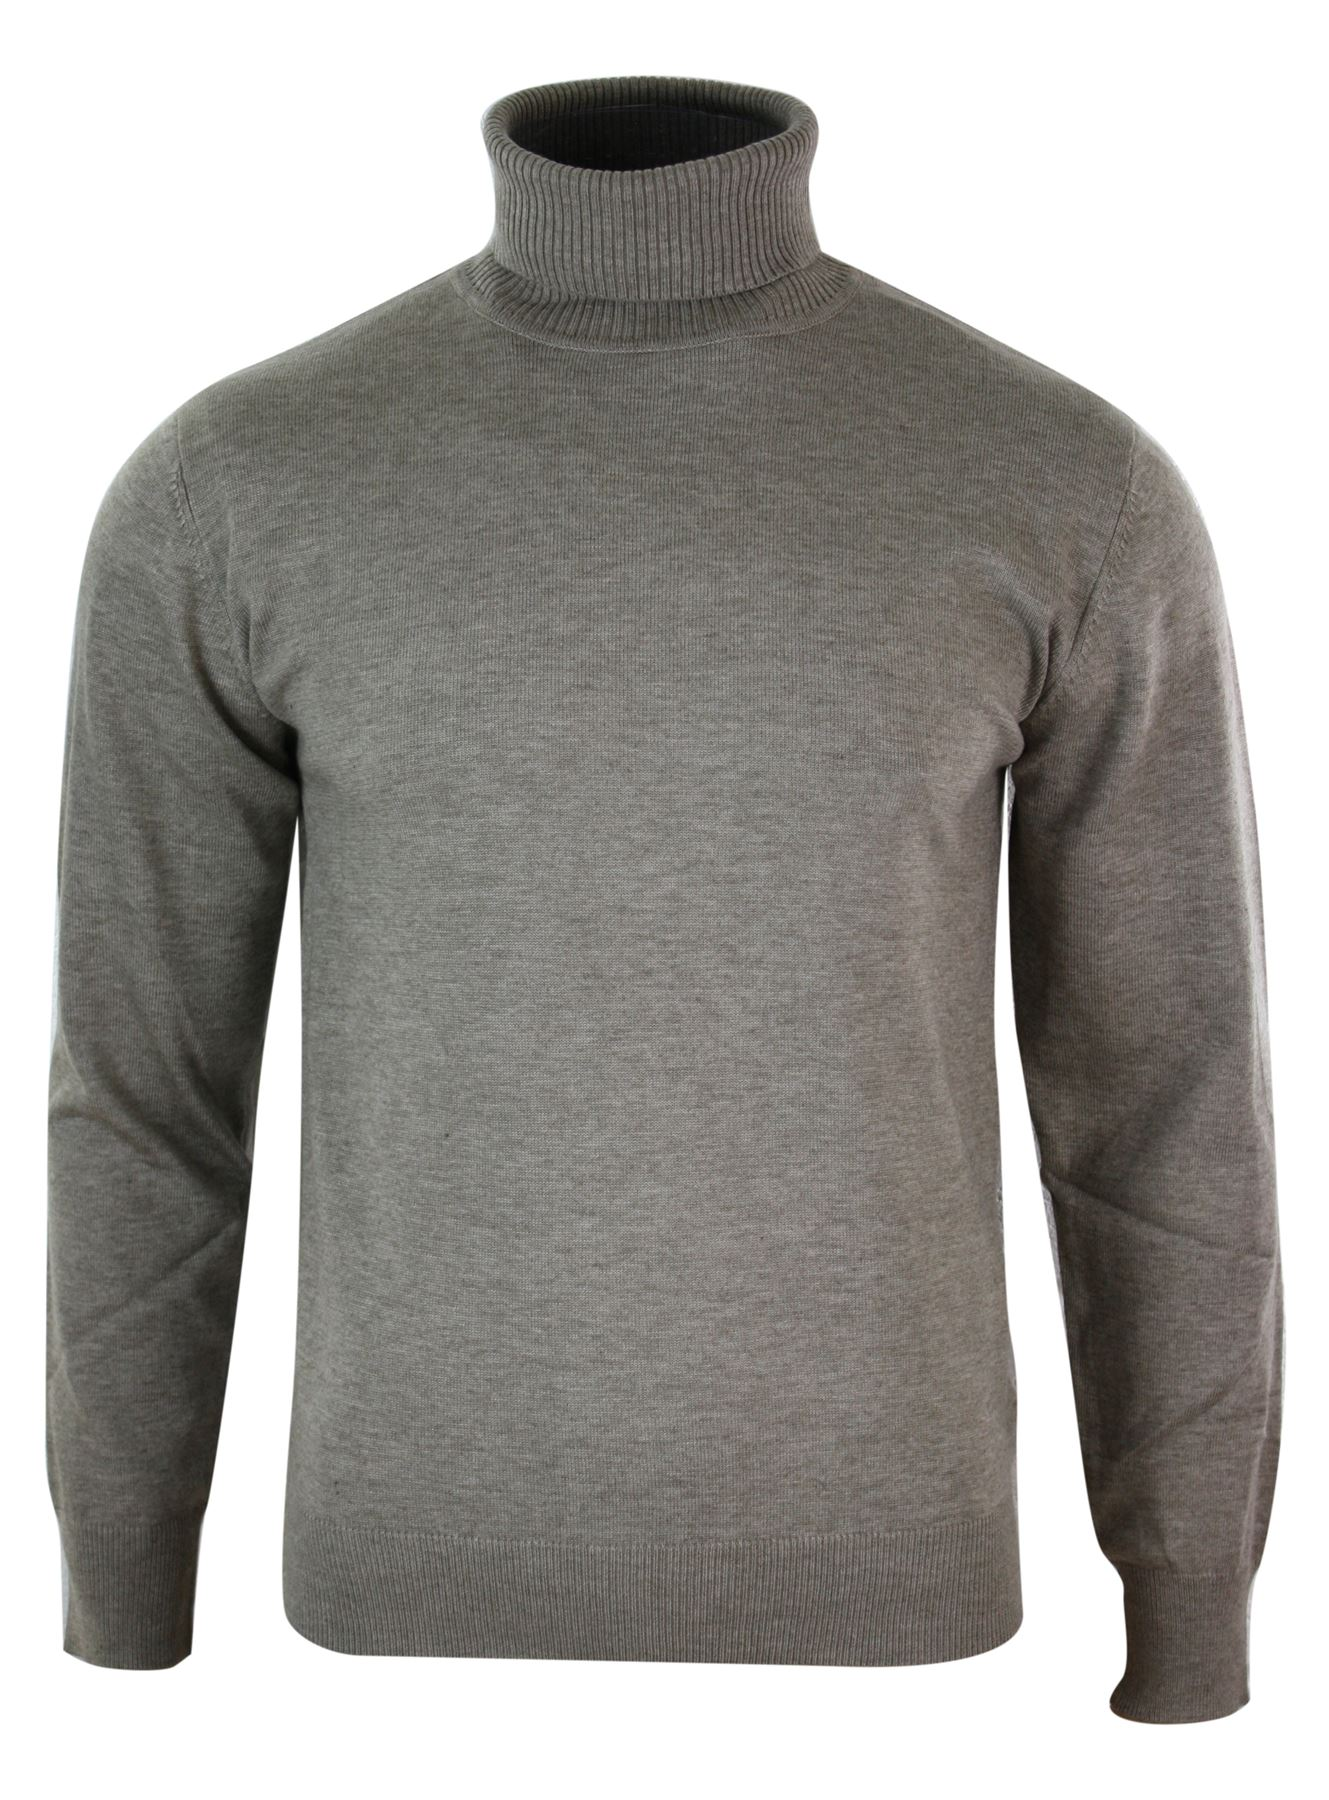 Find great deals on eBay for black polar neck jumpers. Shop with confidence.